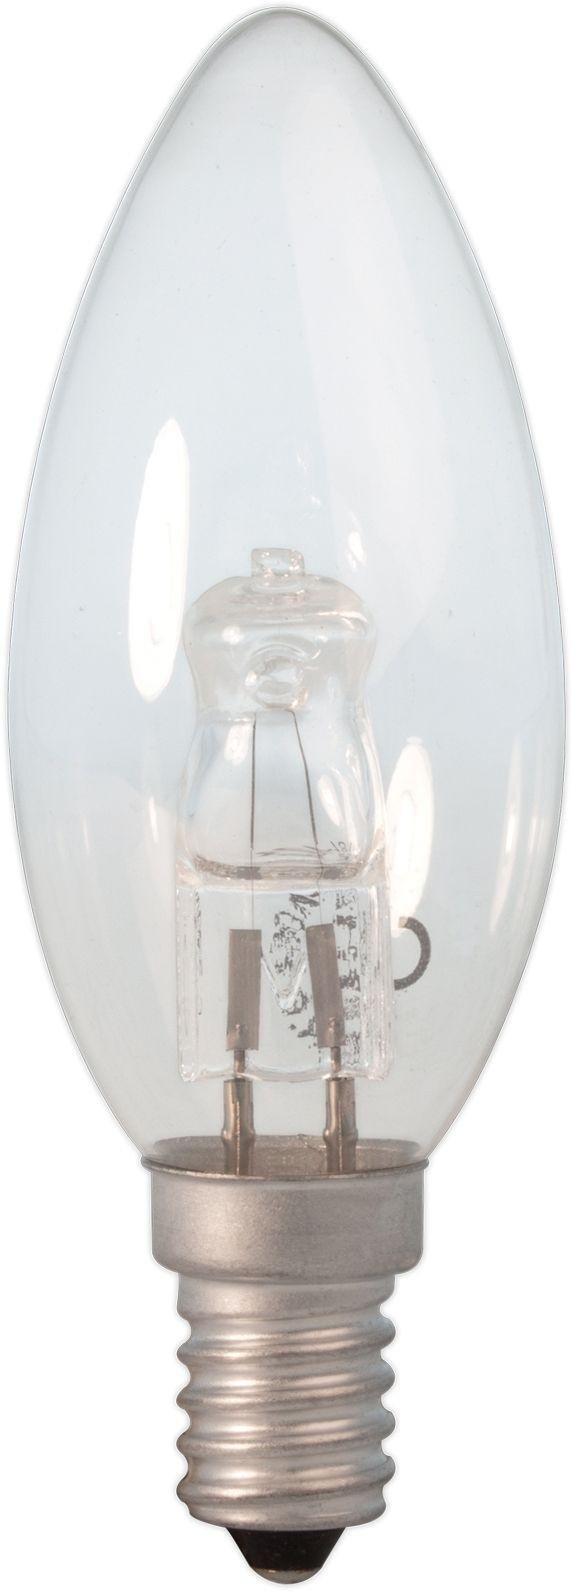 Image of Calex Halogen Candle Clear Glass Dimmable Bulbs - 10 Pack